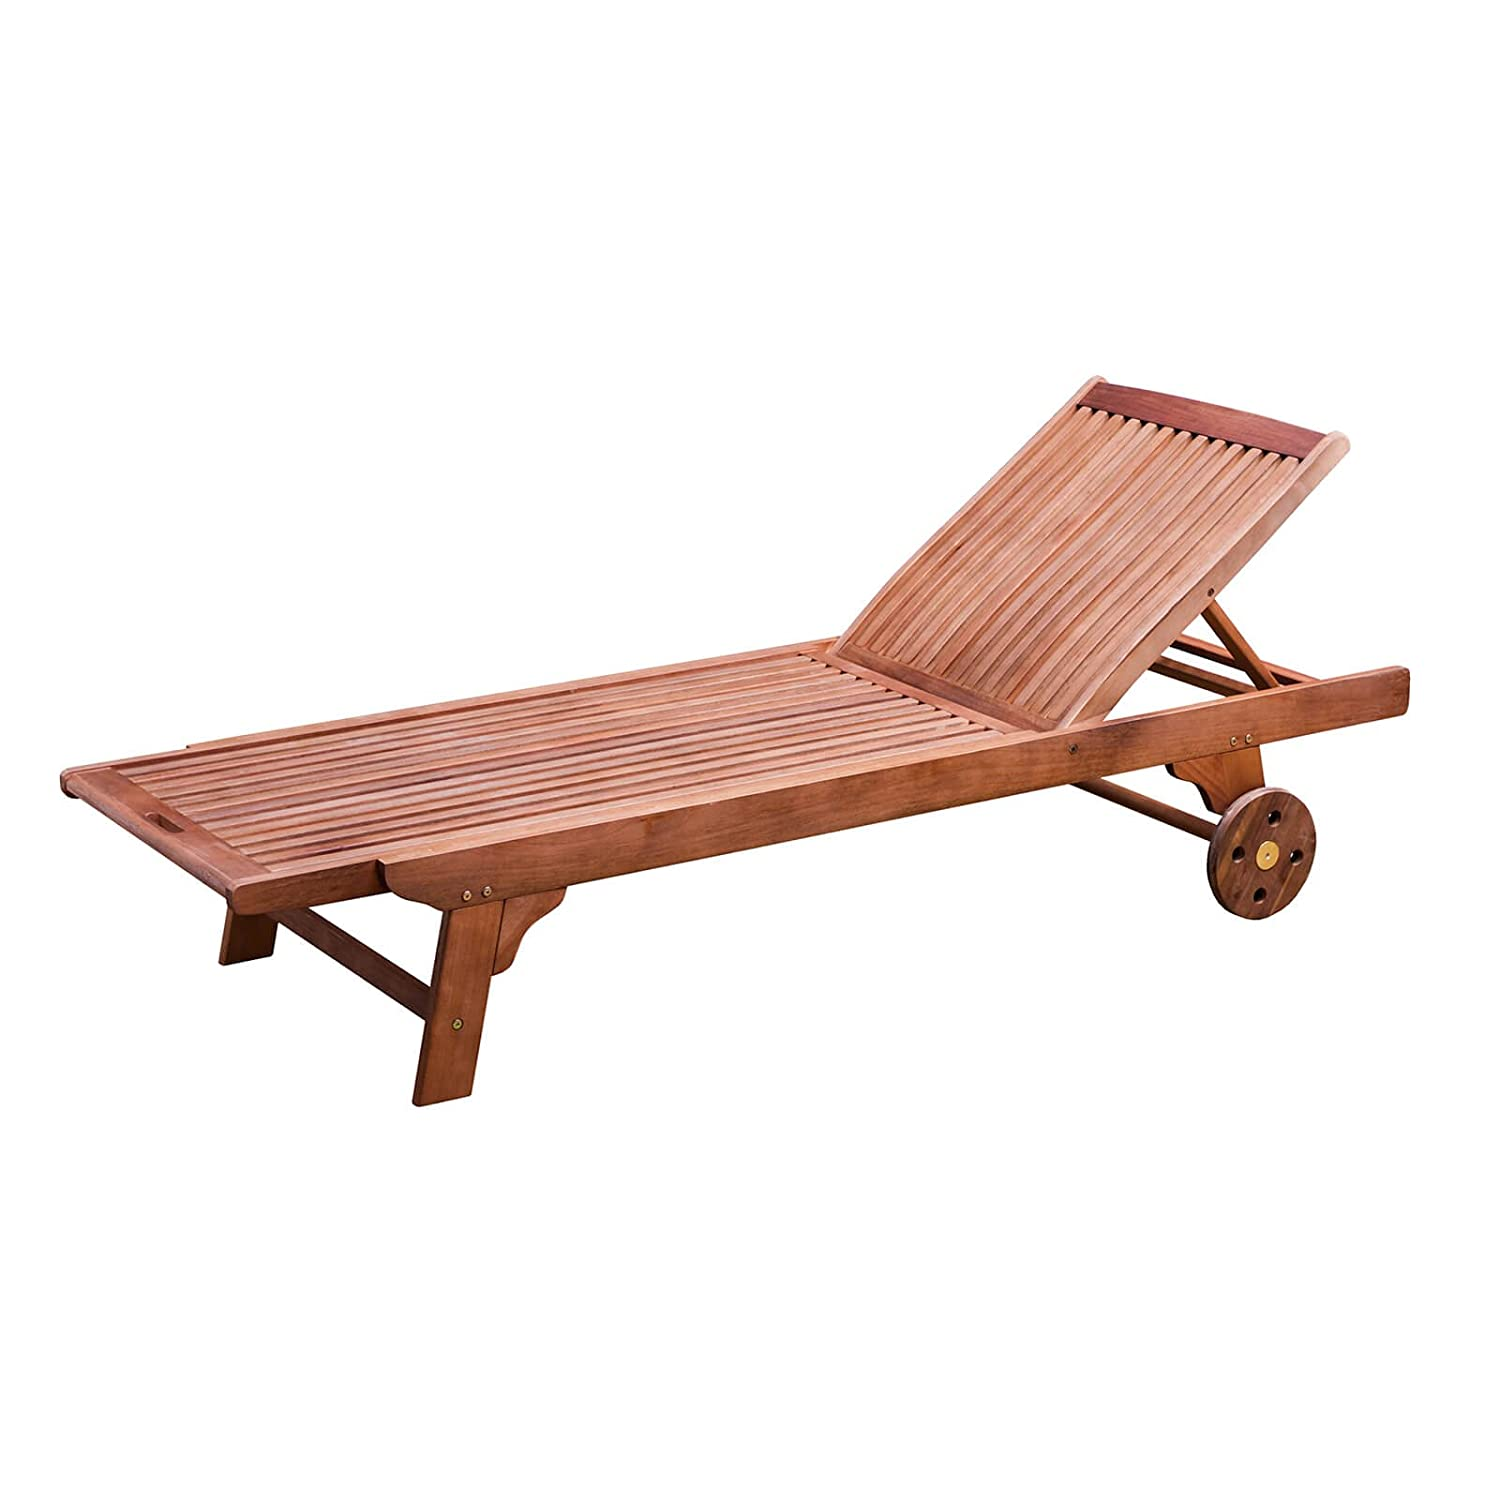 Alfresia Wooden Sunlounger with Wheels